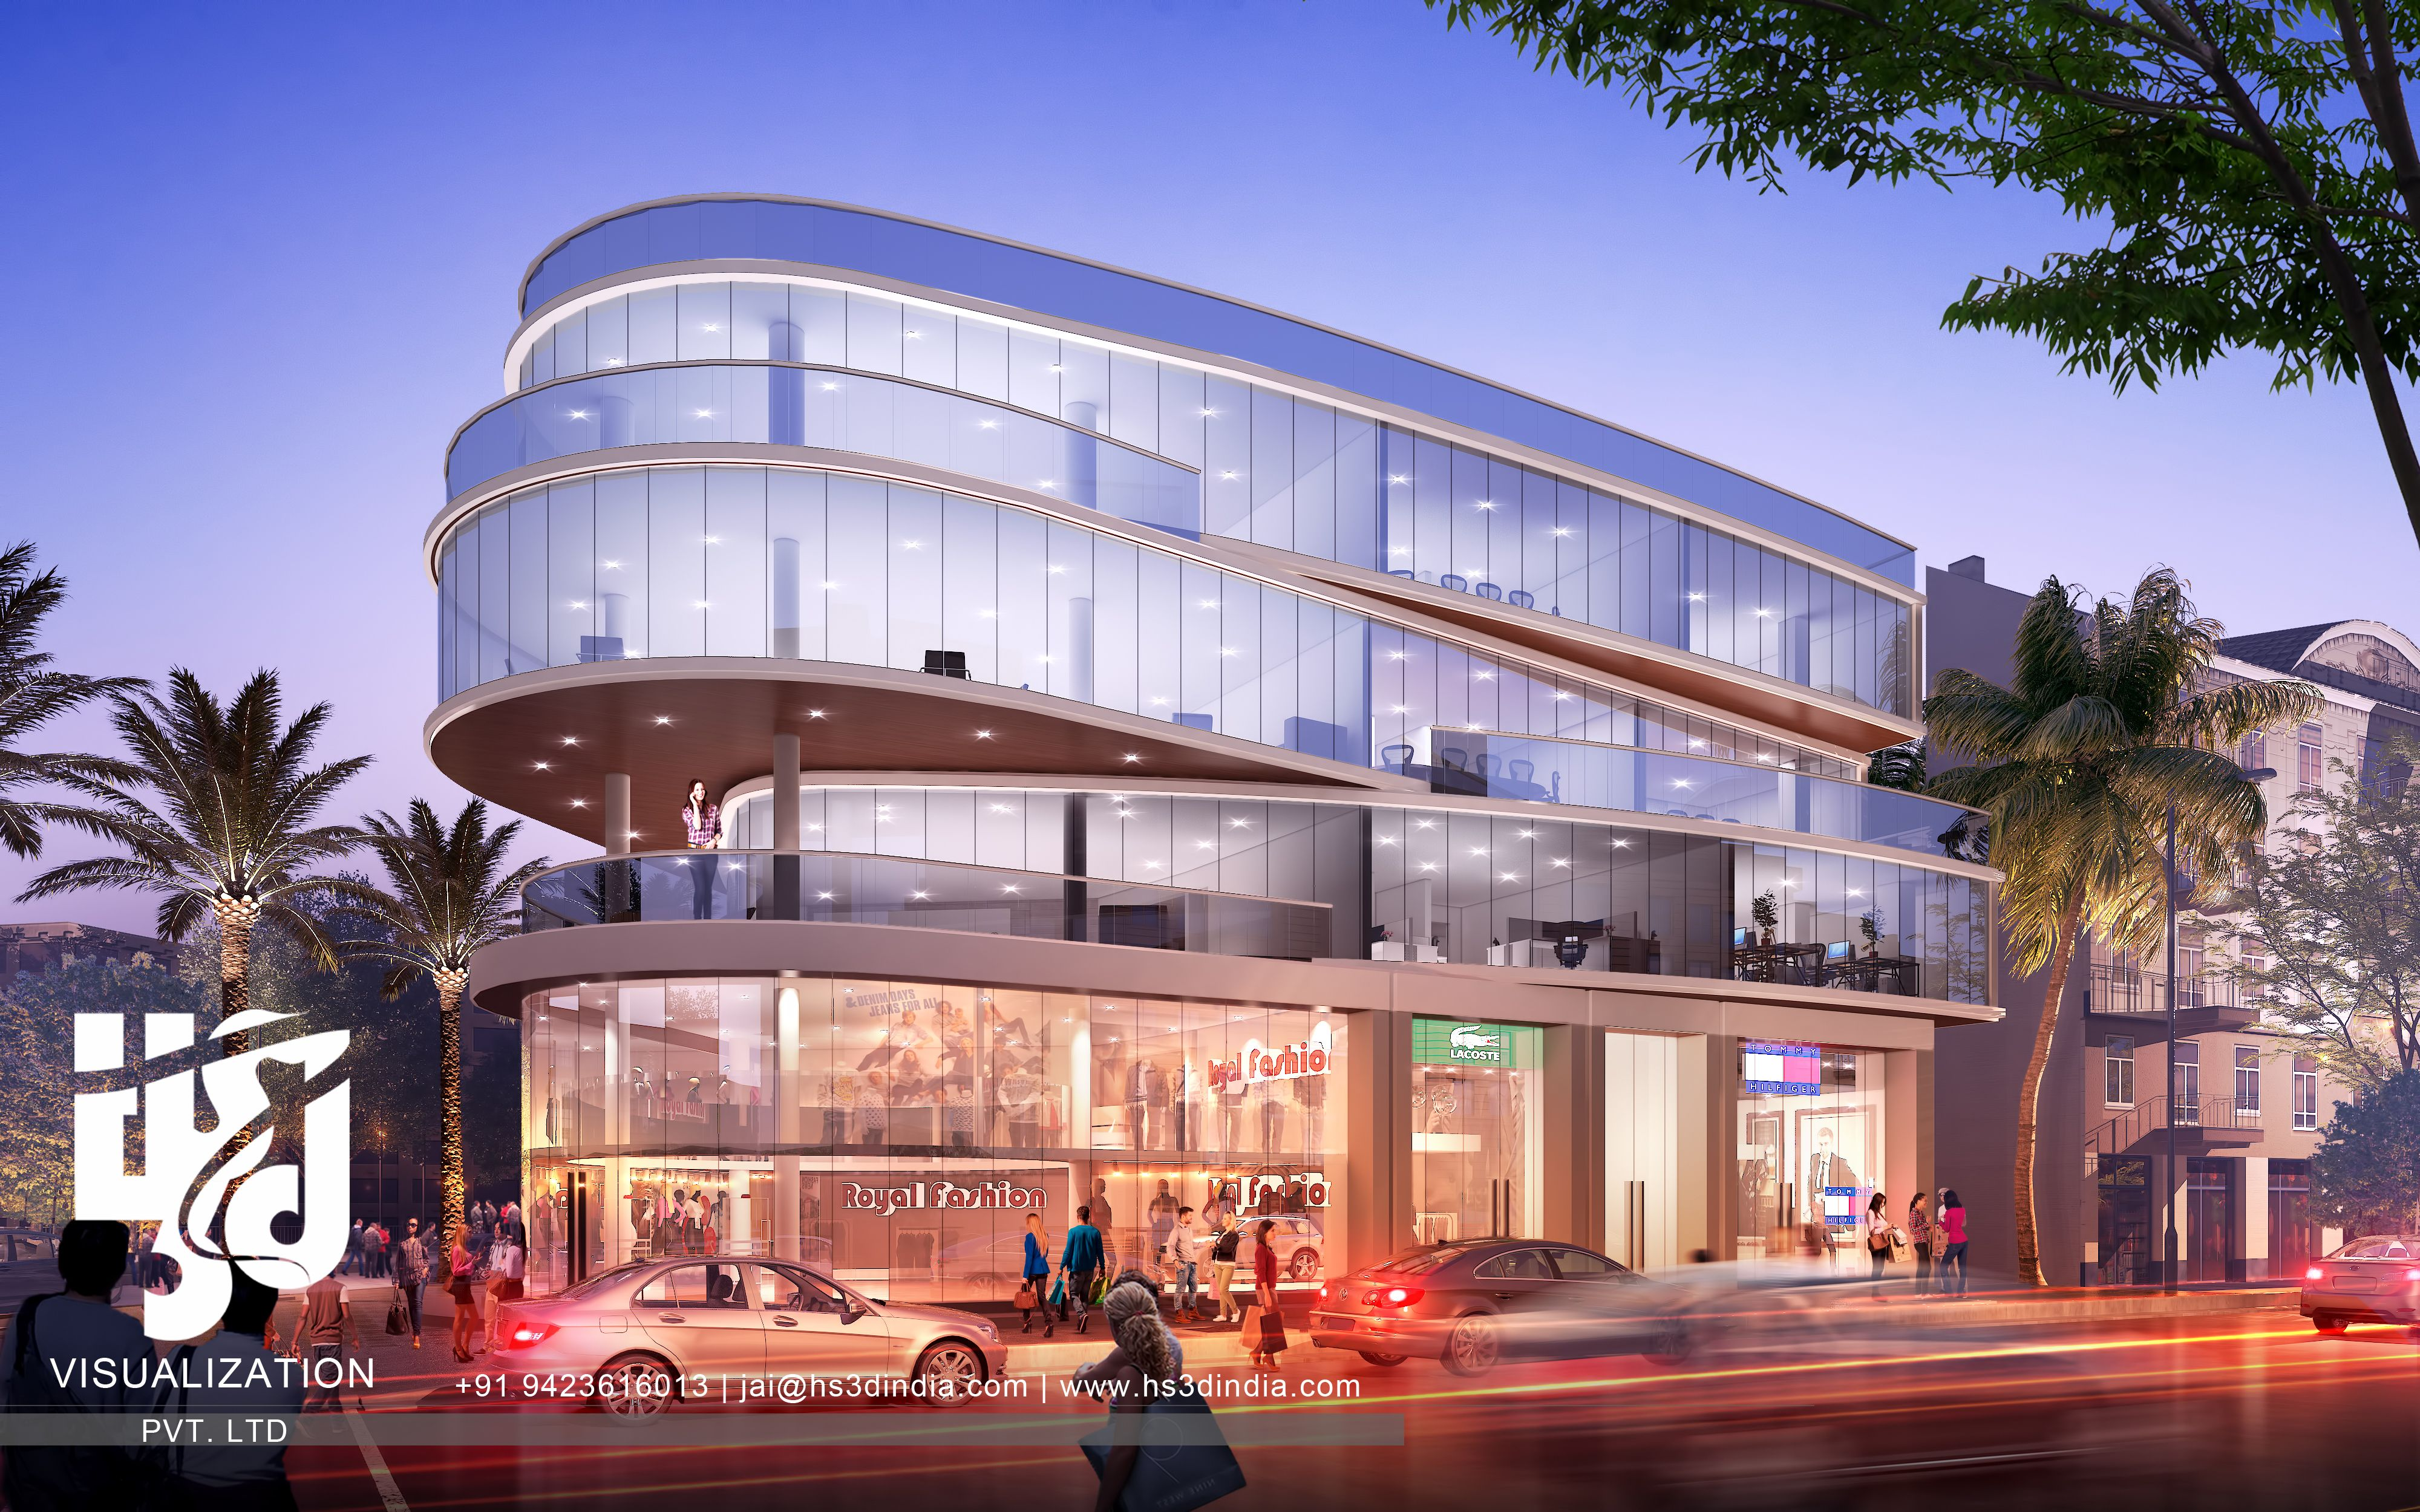 3D MODERN SHOPPING MALL EXTERIOR ELEVATION RENDERING BY HS3D INDIA